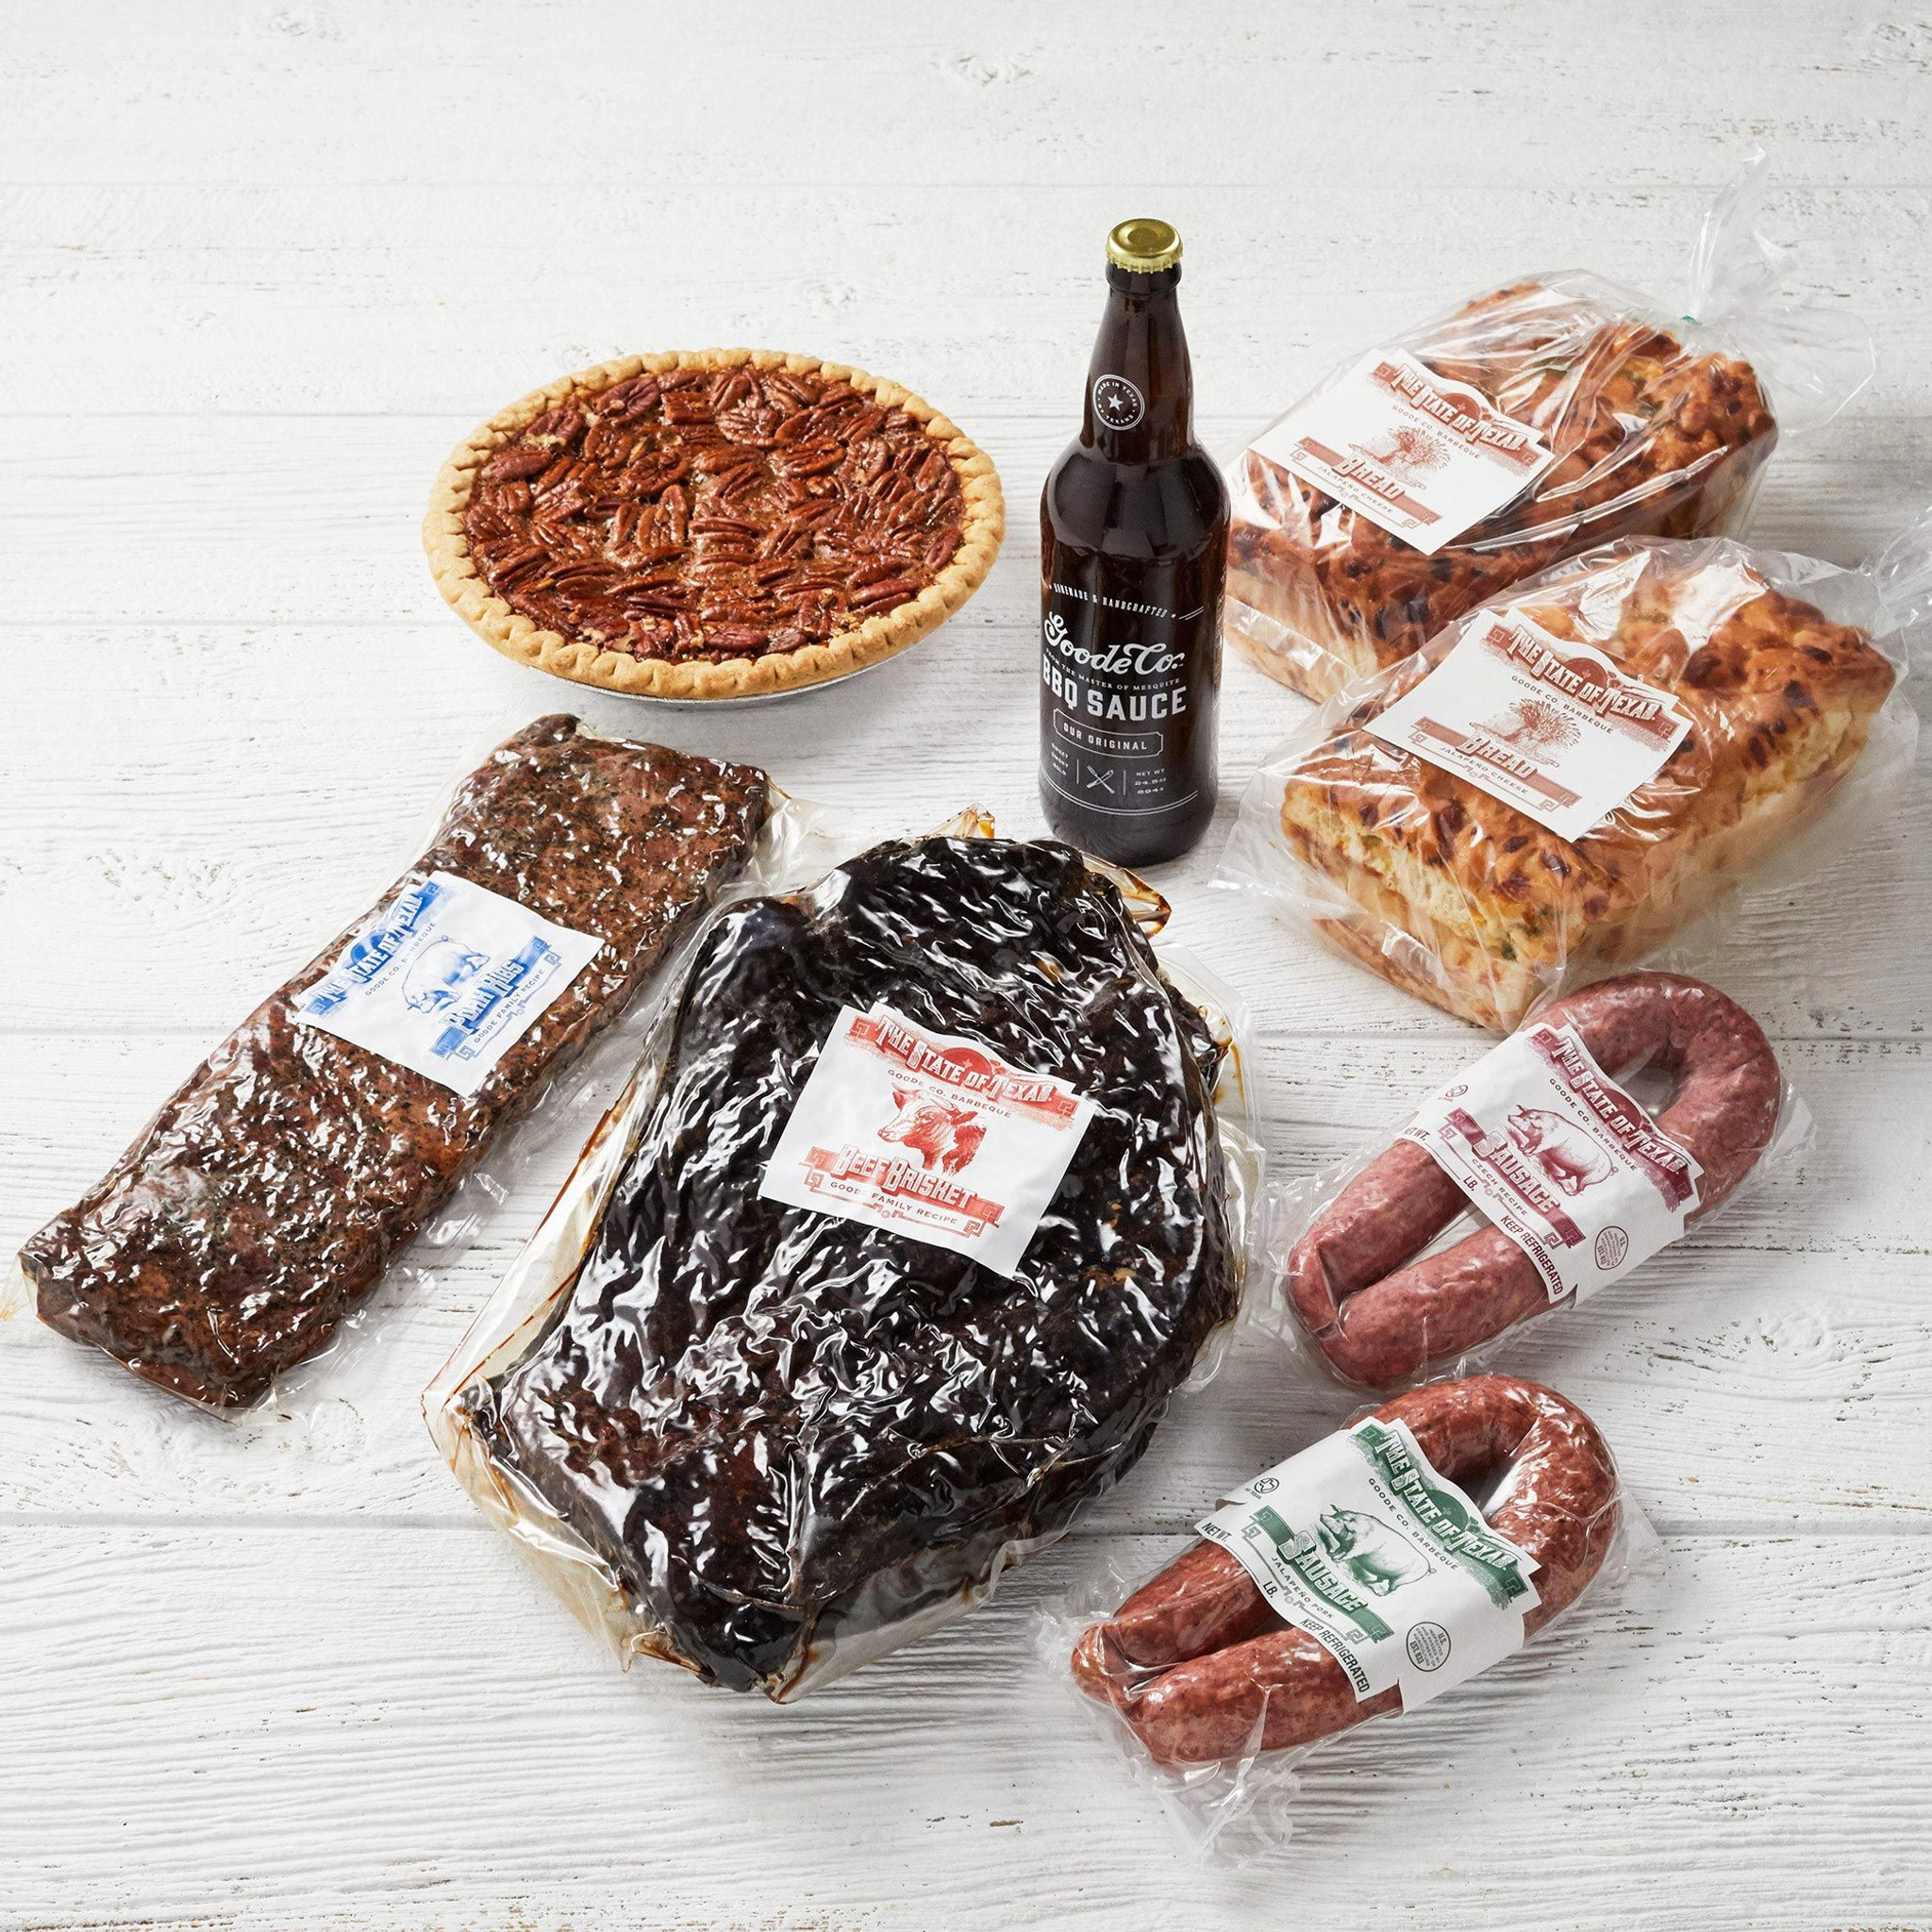 Shipping packaging for Goode Co's The Independence meal bundle. Vacuum-sealed smoked brisket, pork ribs, link of Czech sausage, and link of jalapeño pork sausage. Glass bottle of Goode's Original BBQ sauce, and 2 loaves of jalapeño cheese bread.